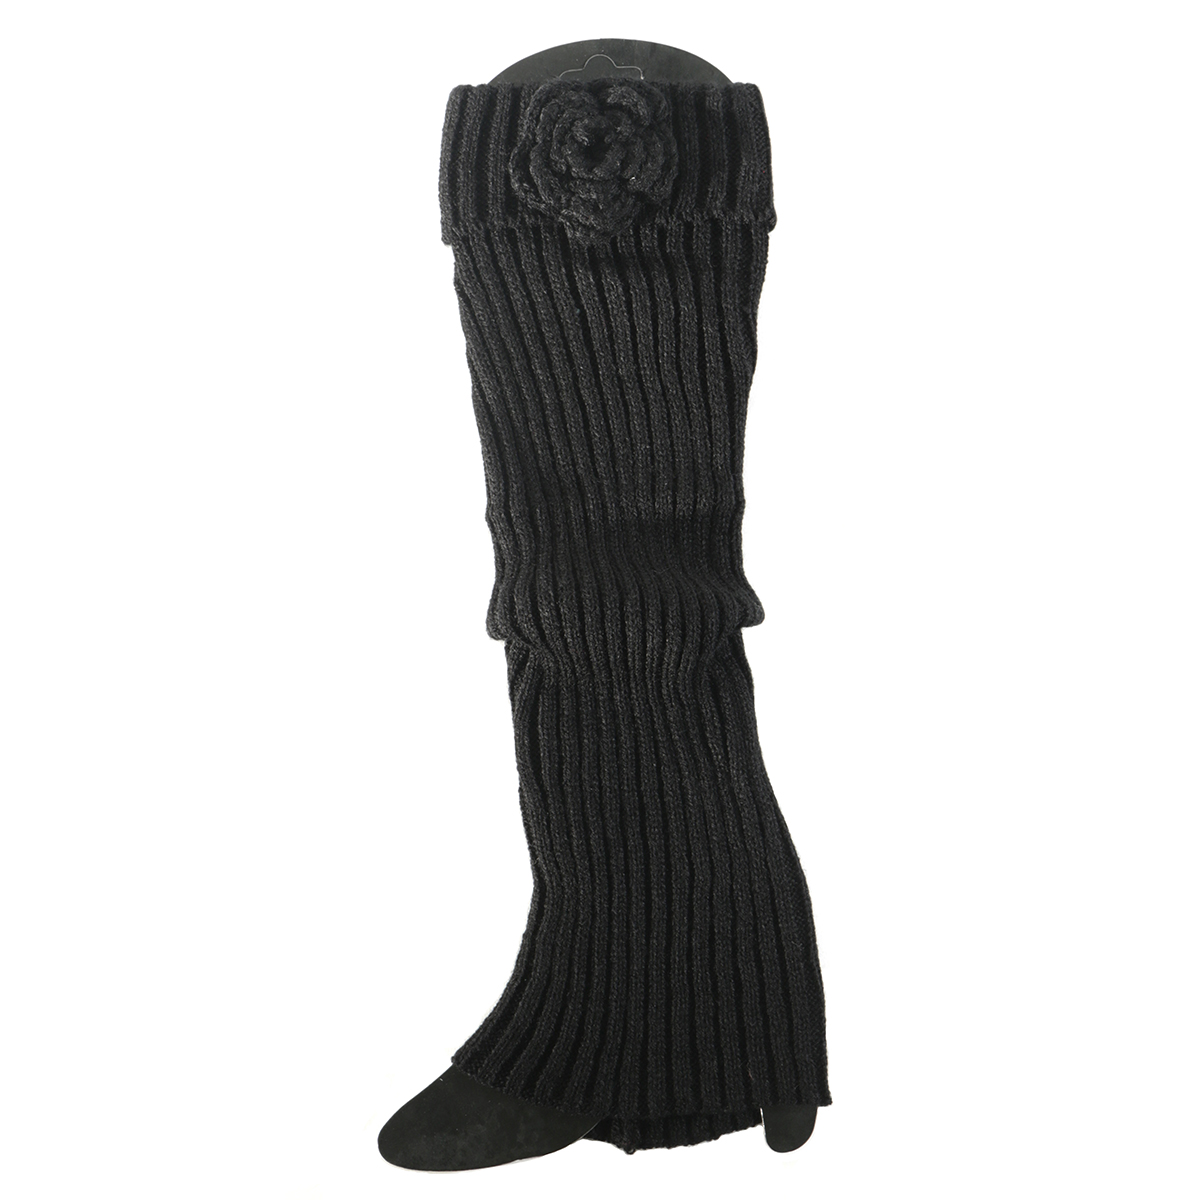 Black Boot Cuff with Flower Tall 50sp